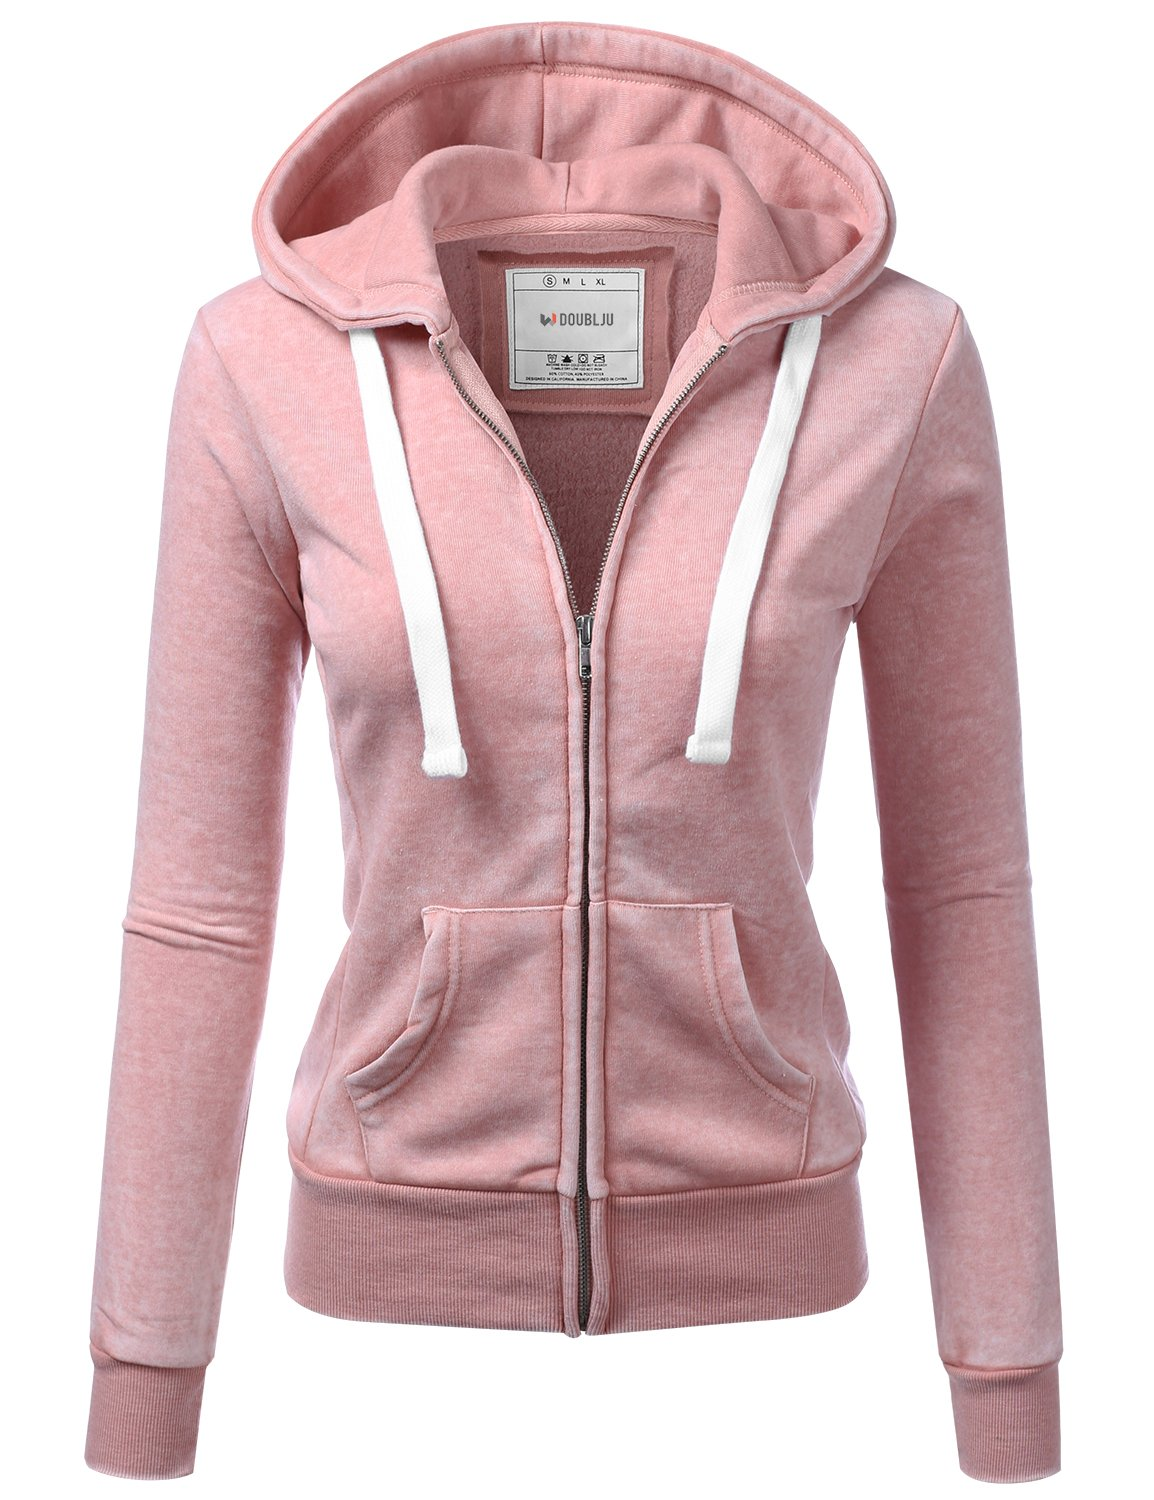 Doublju Lightweight Thin Zip-up Hoodie Jacket for Women with Plus Size MAUVEPINK X-Large by Doublju (Image #1)